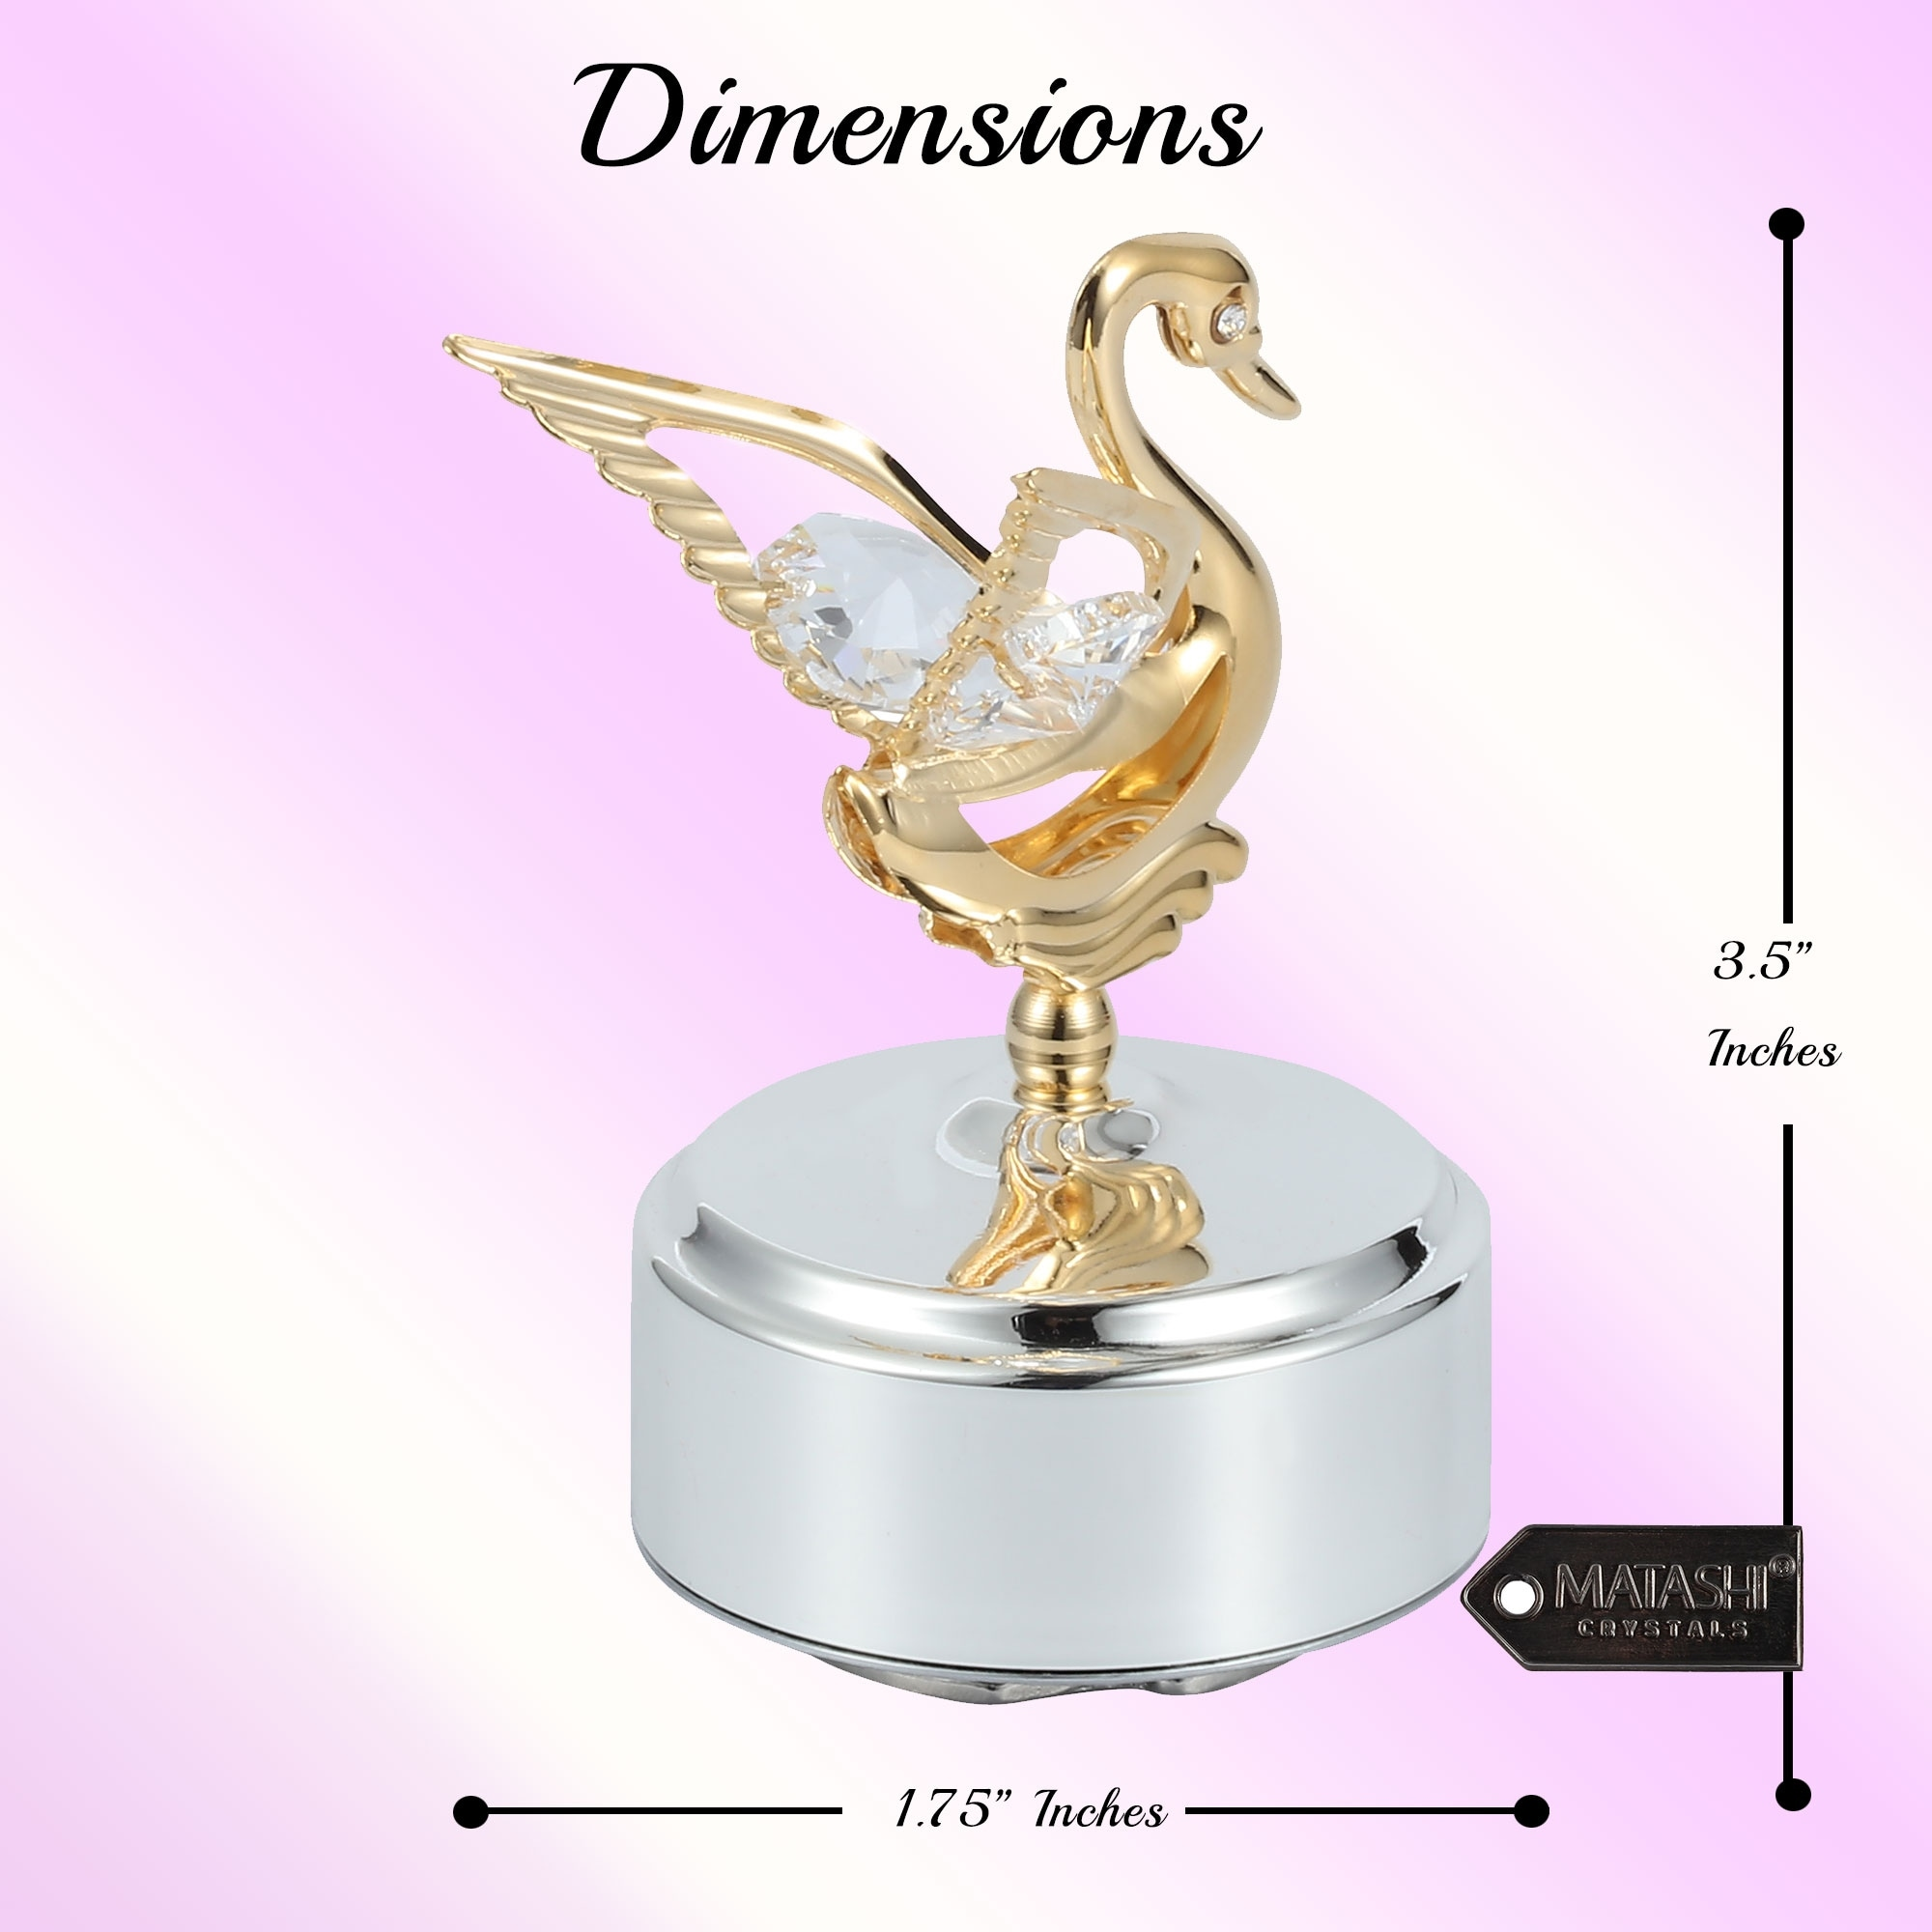 Matashi Home Decorative Showpiece 24k Gold Plated Music Box With Crystal Studded Swan Figurine Overstock 30264351